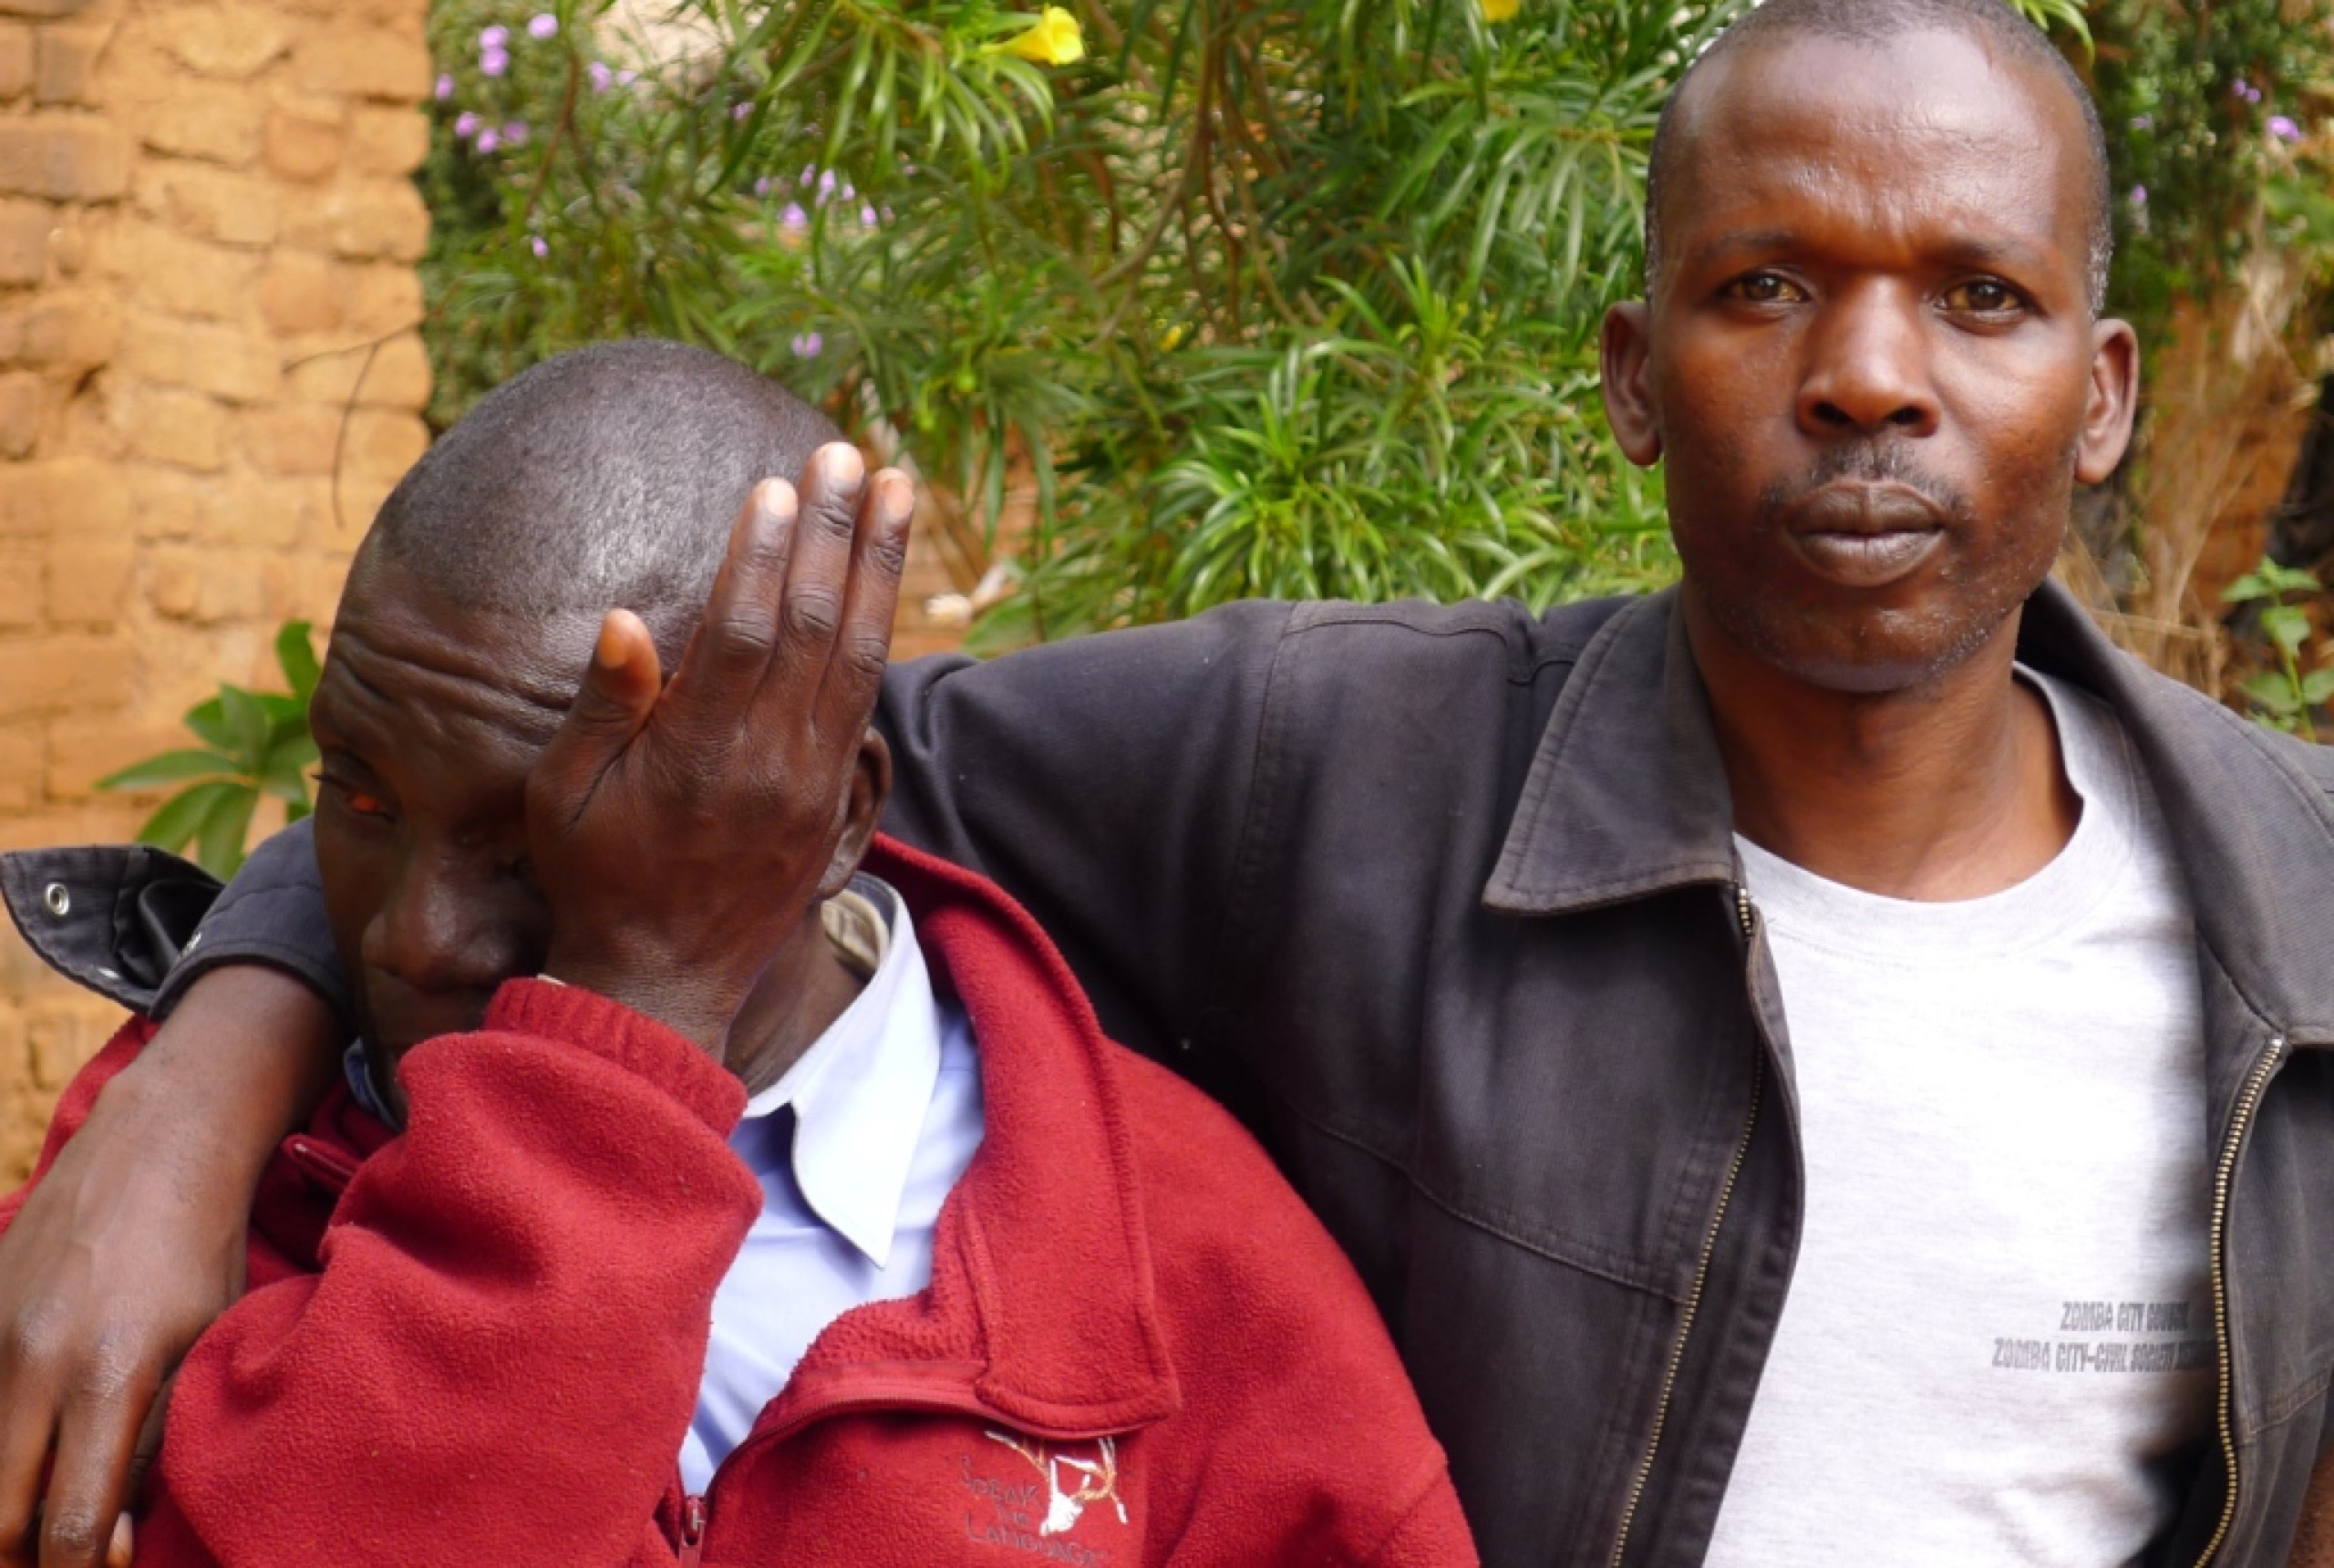 A man in a black jacket has his arm around a man in a red jacket, who is wiping tears with his hand.